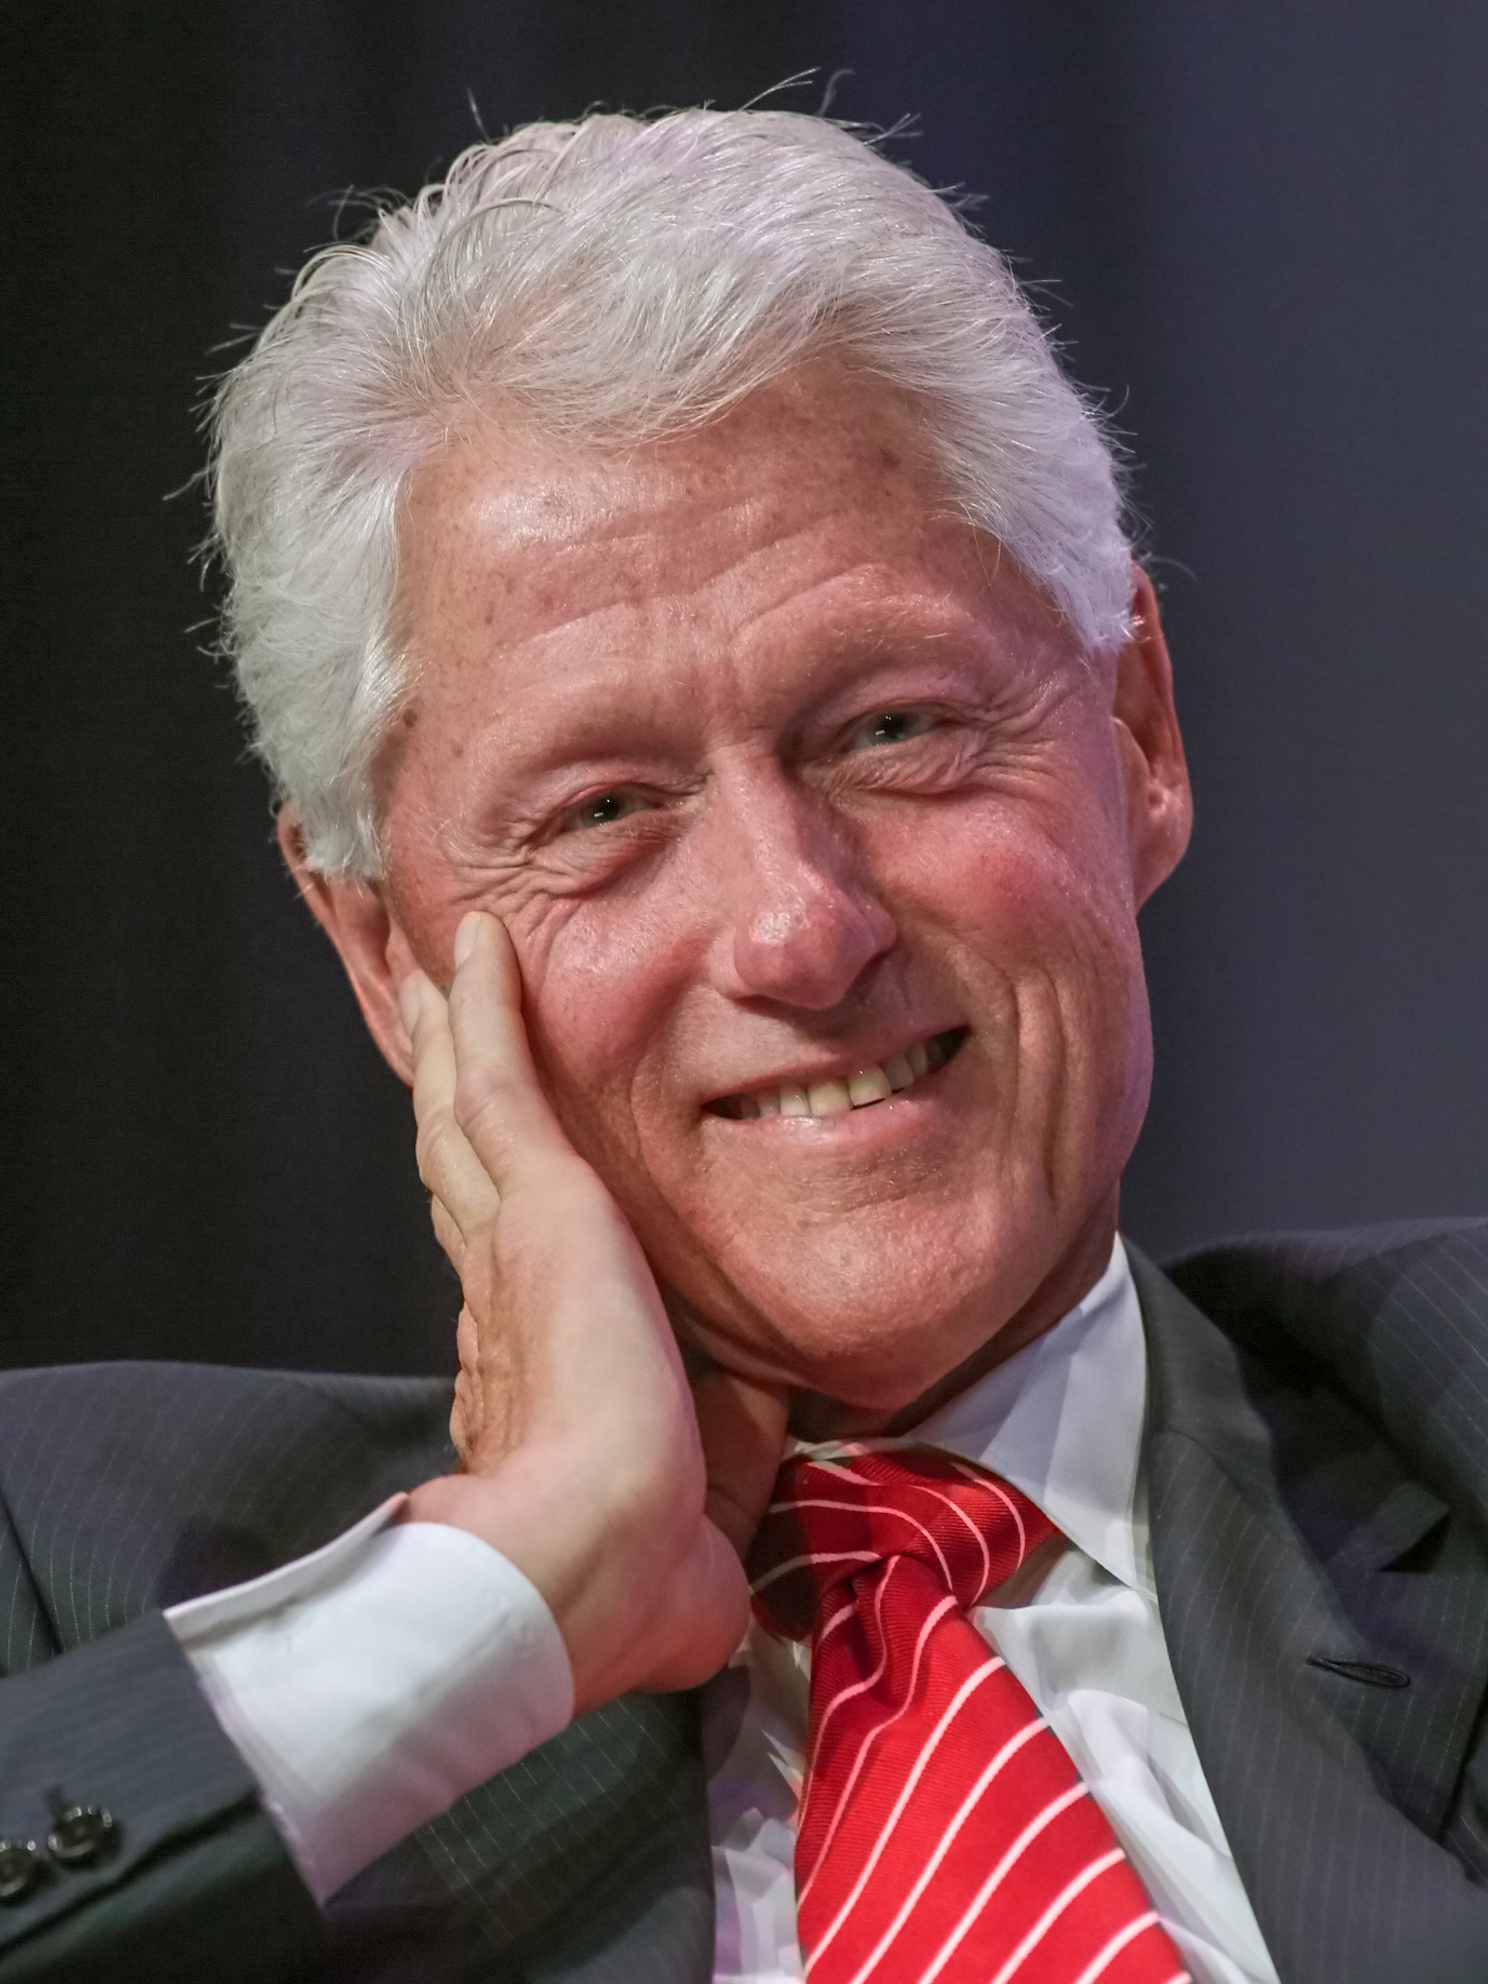 Bill Clinton - Wikiped...